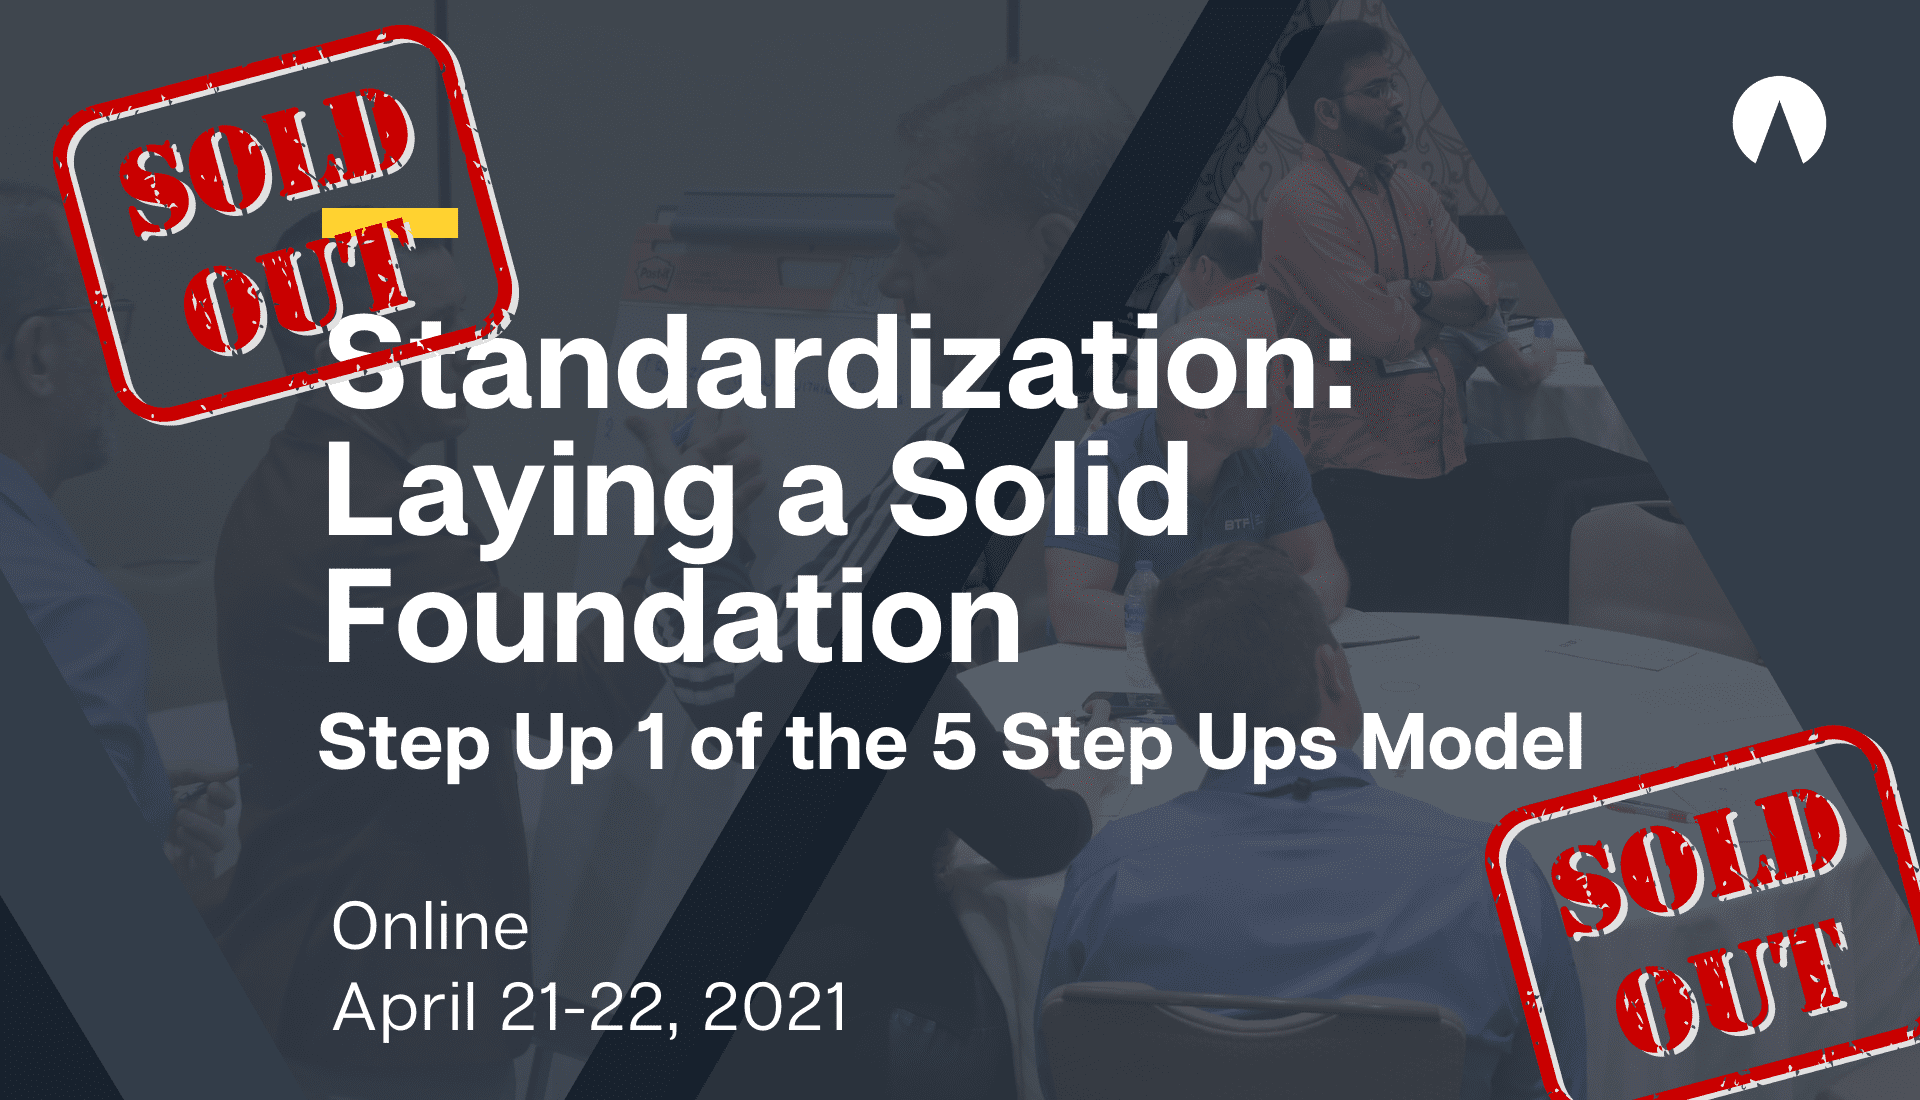 Standardization: Laying a solid foundation, Step Up 1 of the 5 Step Ups model.